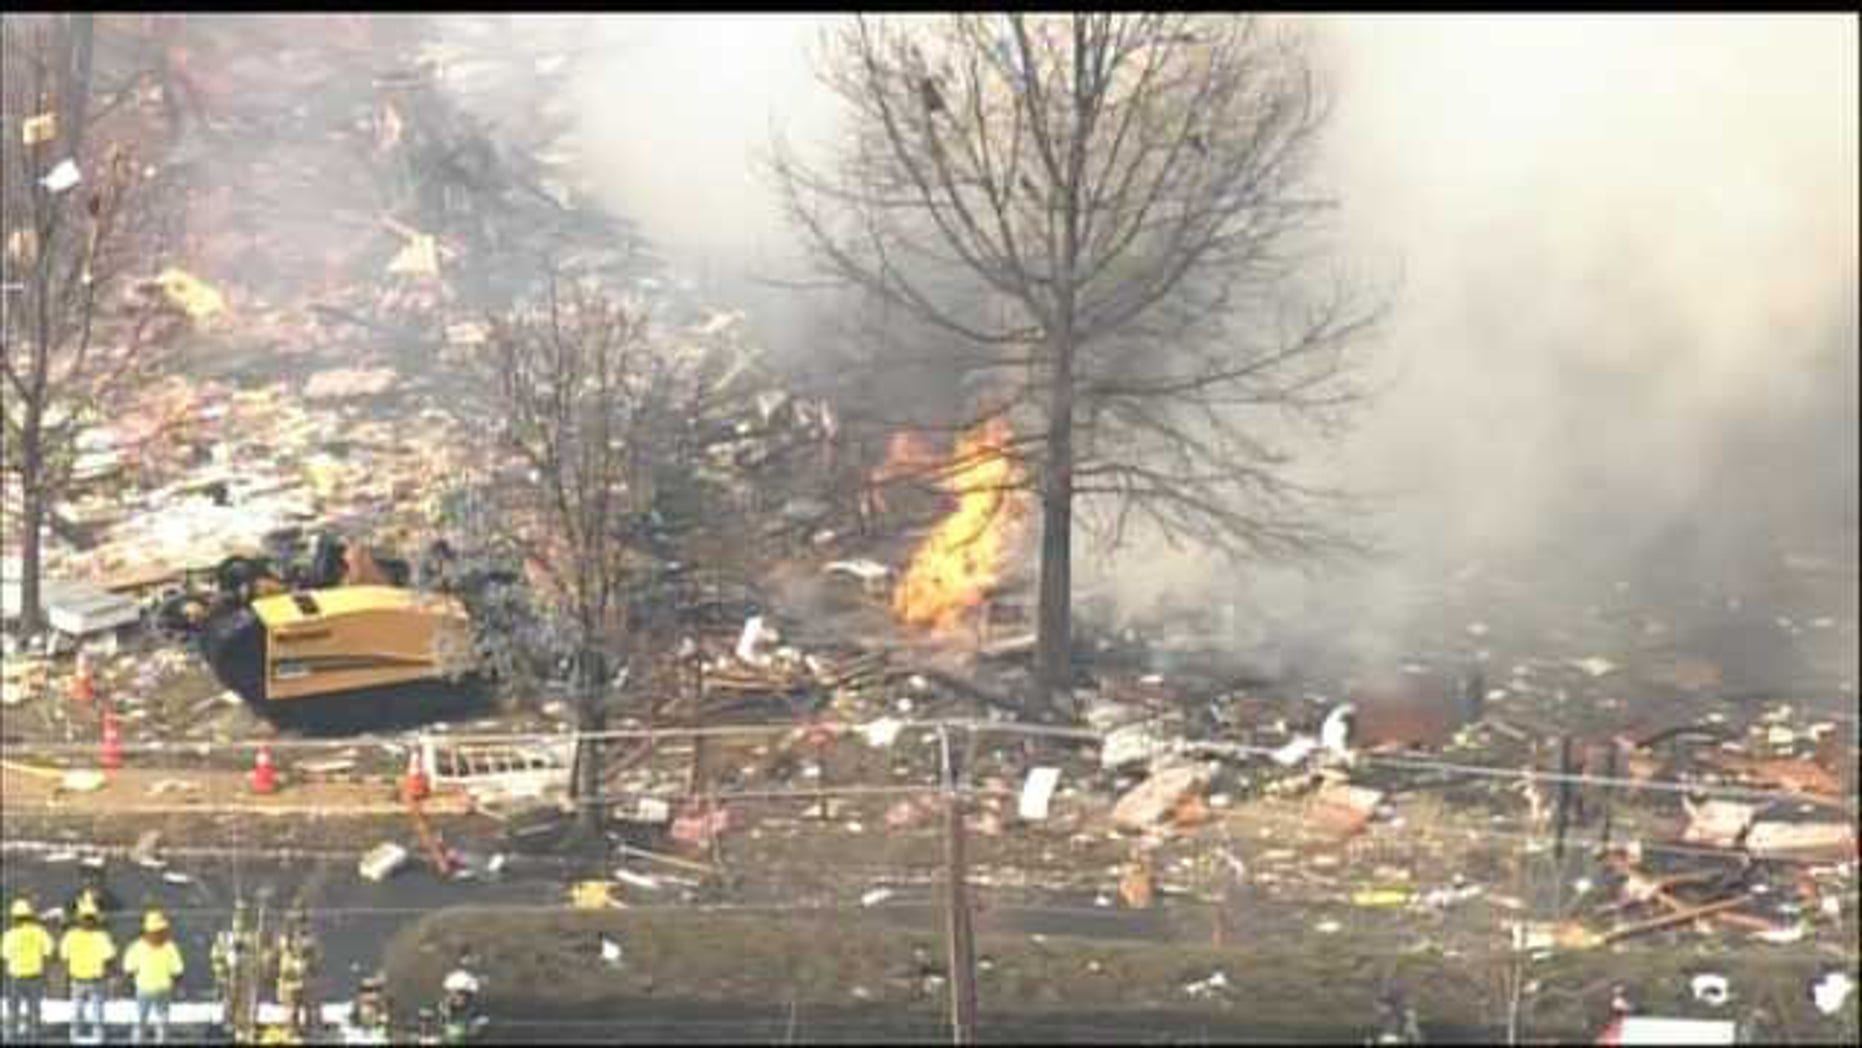 "March 4, 2014: This aerial photo shows the aftermath of an explosion at a townhouse complex in Ewing, N.J. A gas line damaged by a contractor exploded ""like a bomb"" while utility crews worked to repair it Tuesday at the complex, killing one woman and injuring seven people while several homes were destroyed or damaged. (MyFoxPhilly.com)"